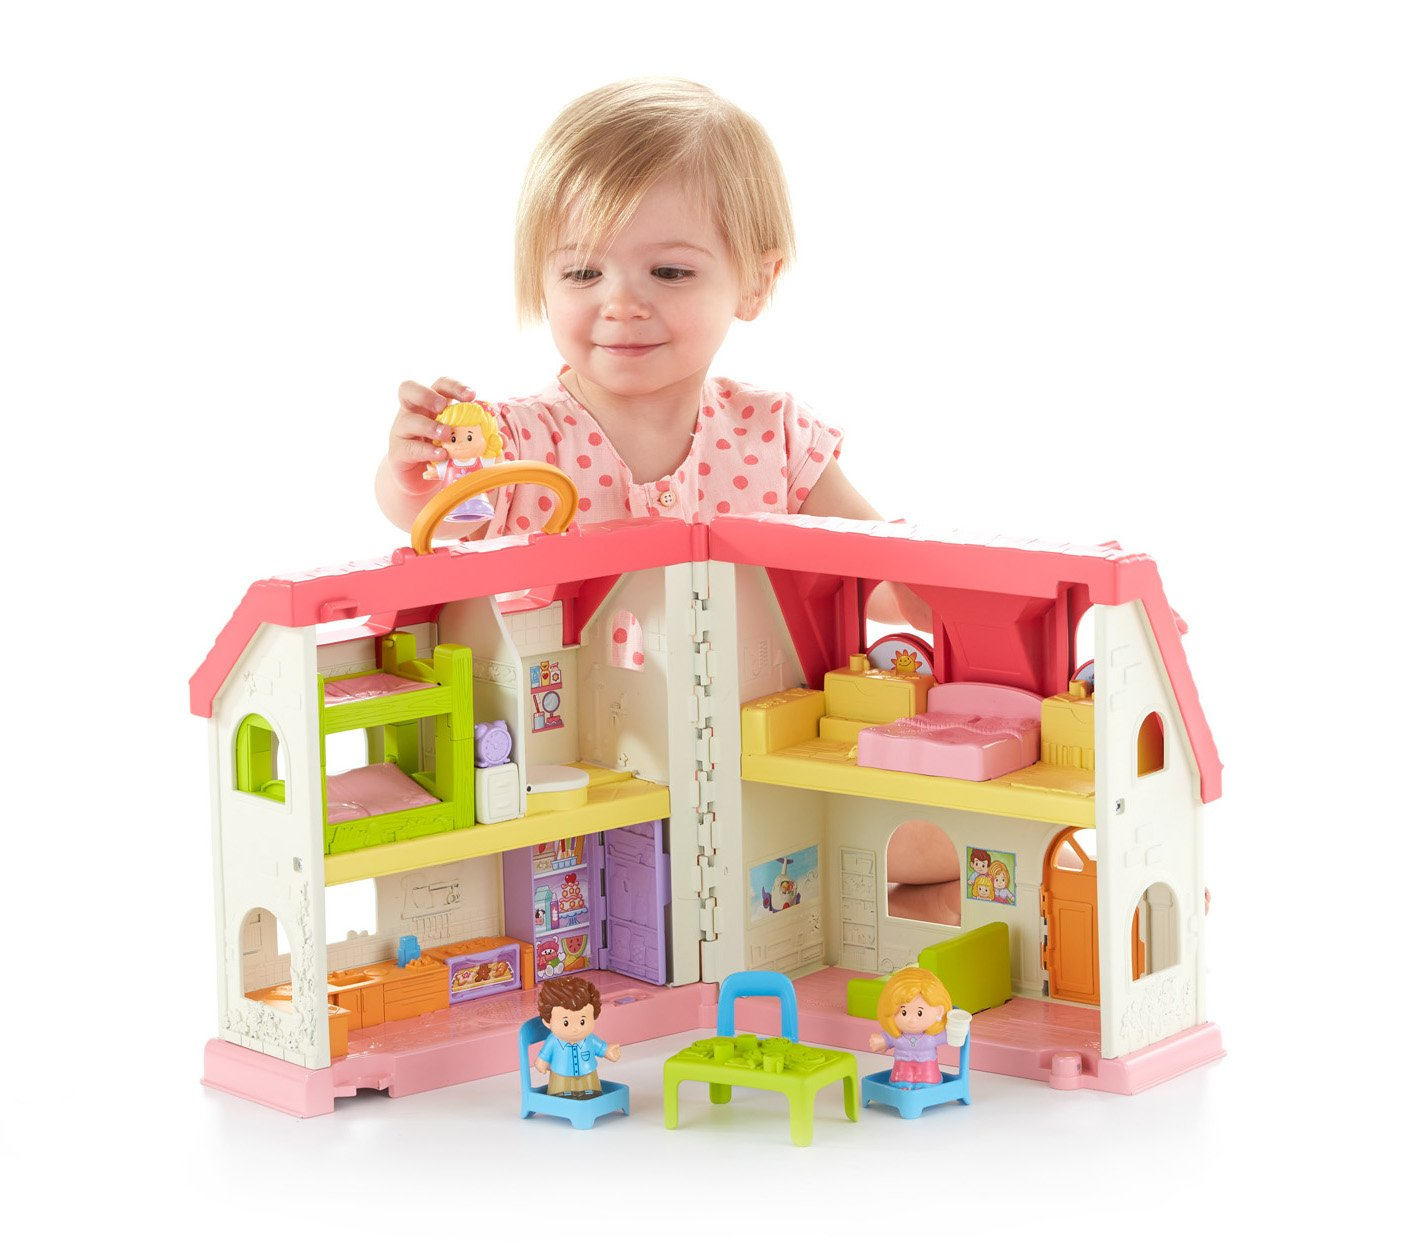 Toys For 2 And Up : Whatre the best toys for year old girls in